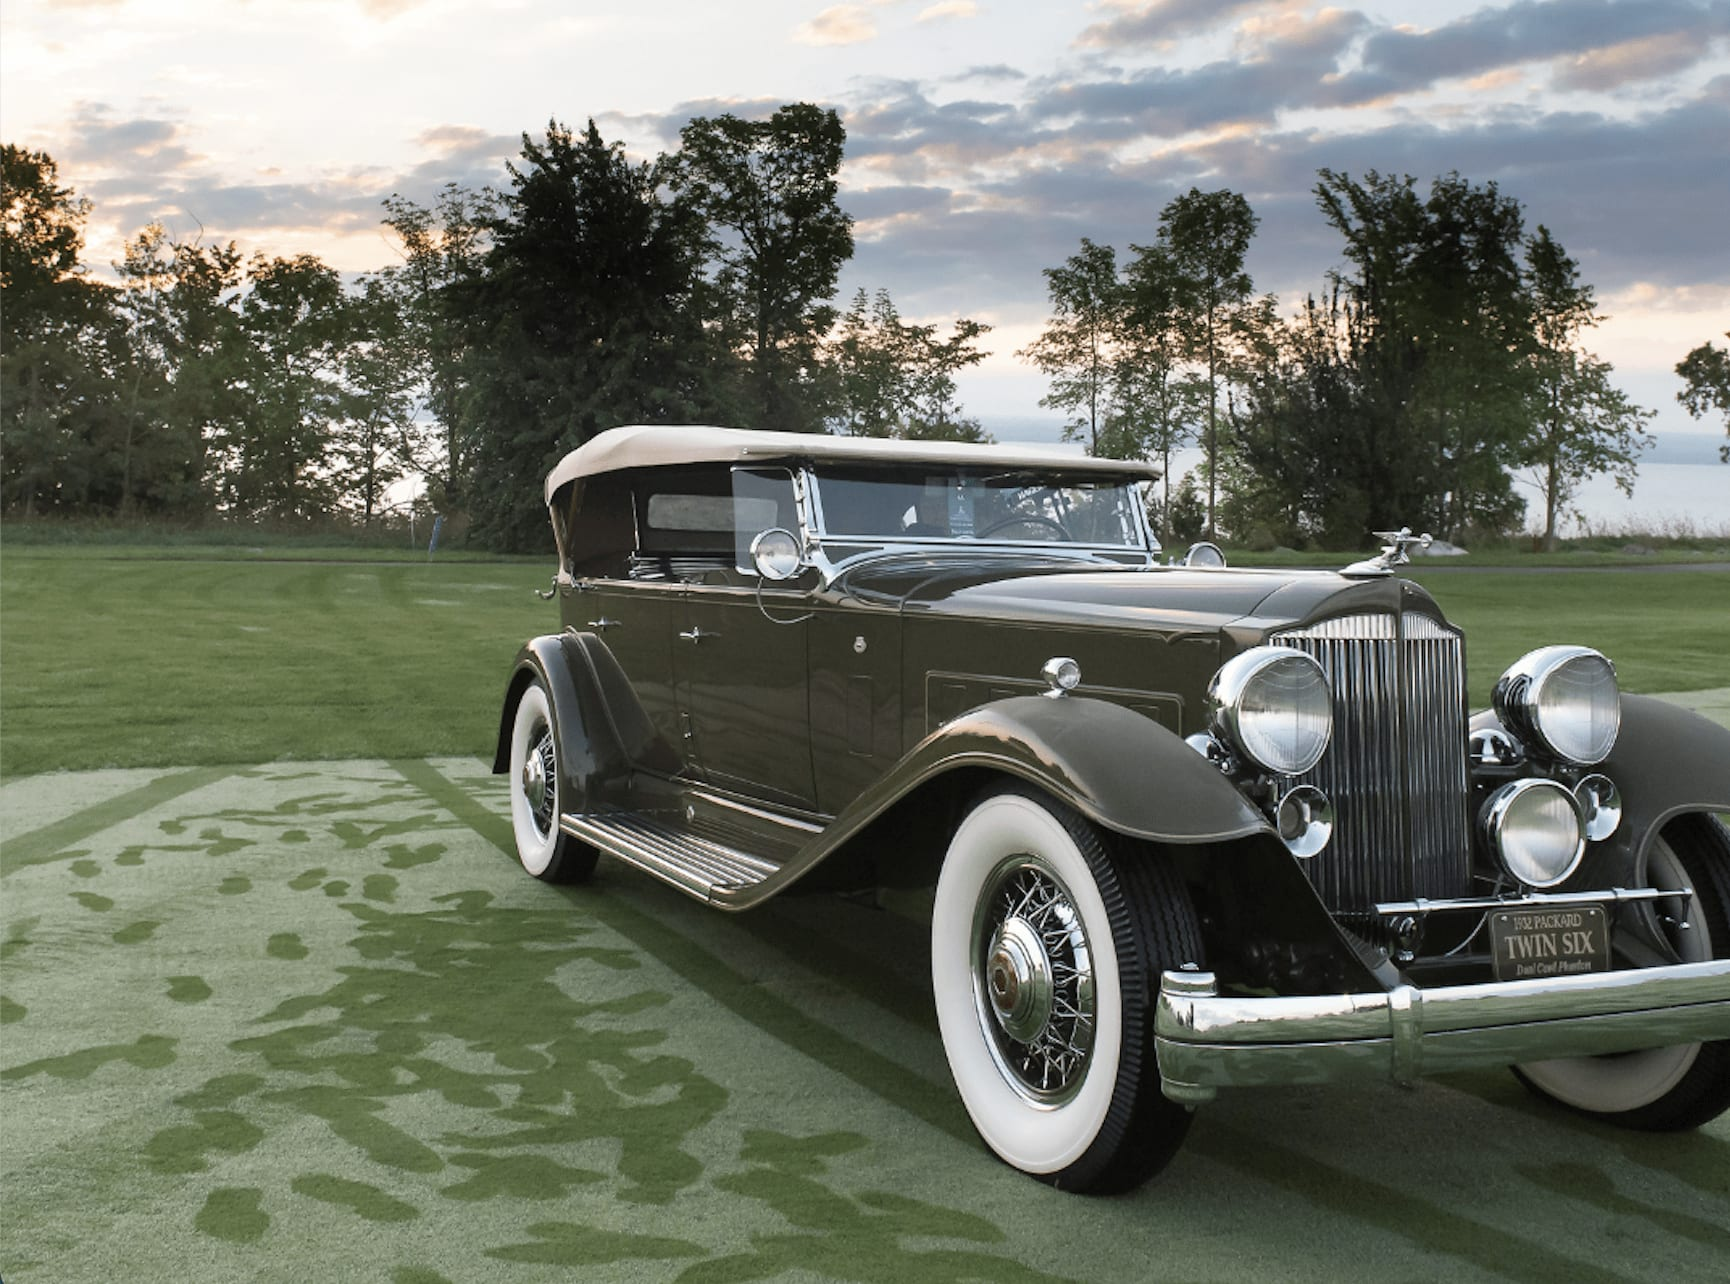 Greenwich Lifestyle 10.10-10.31.21: Greenwich Concours d'Elegance's 25th Anniversary and More